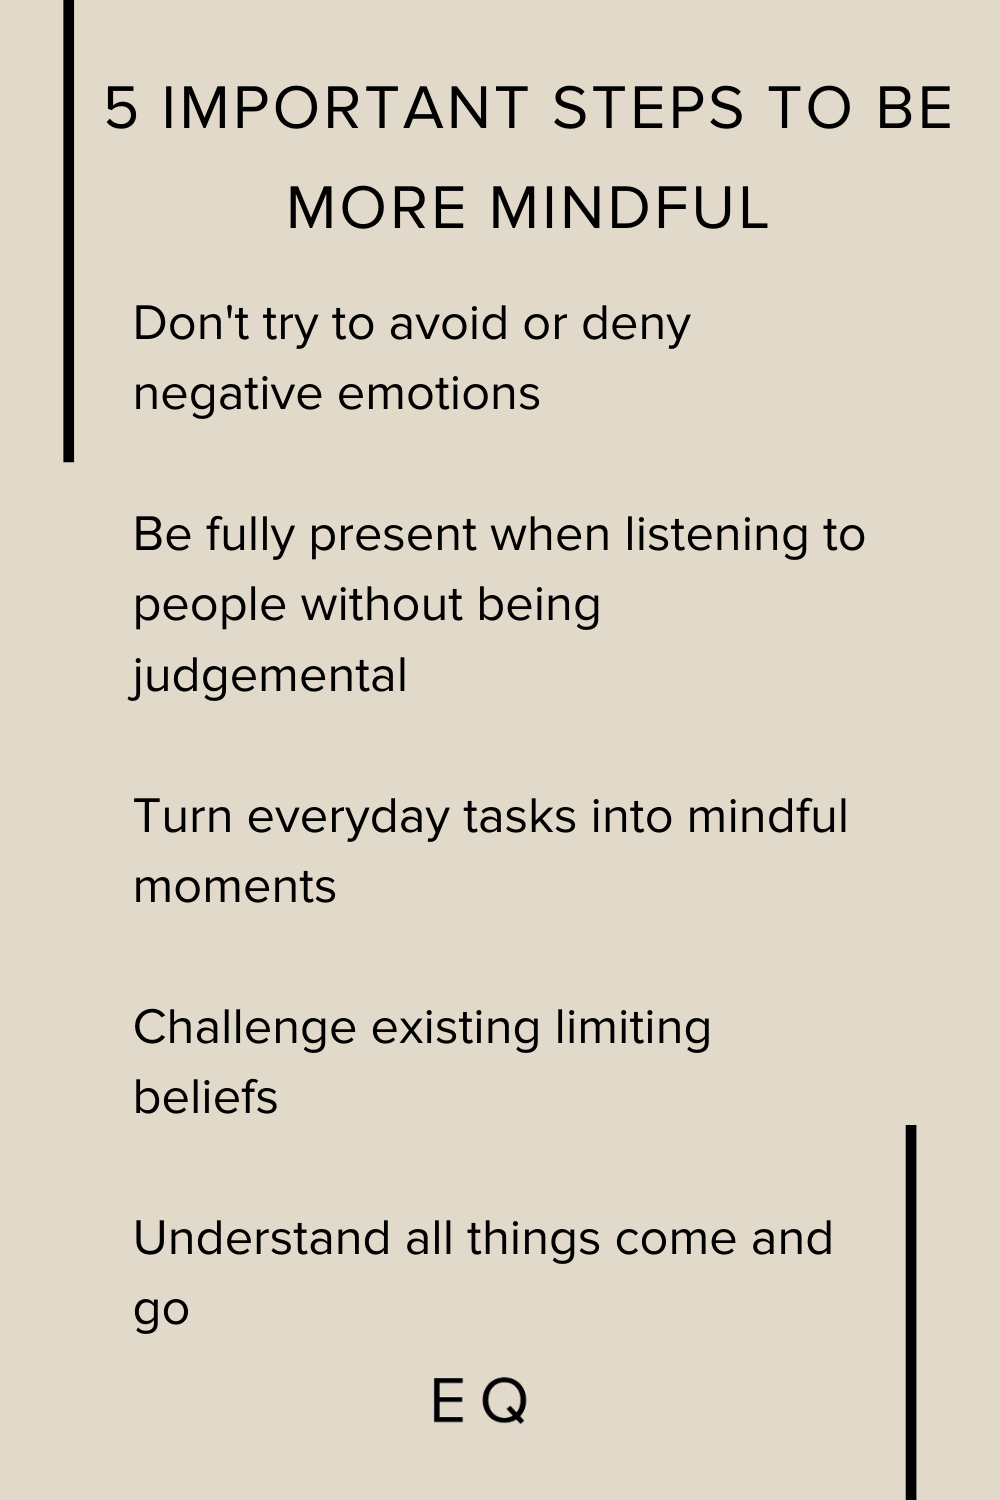 5 Important Steps to be more Mindful